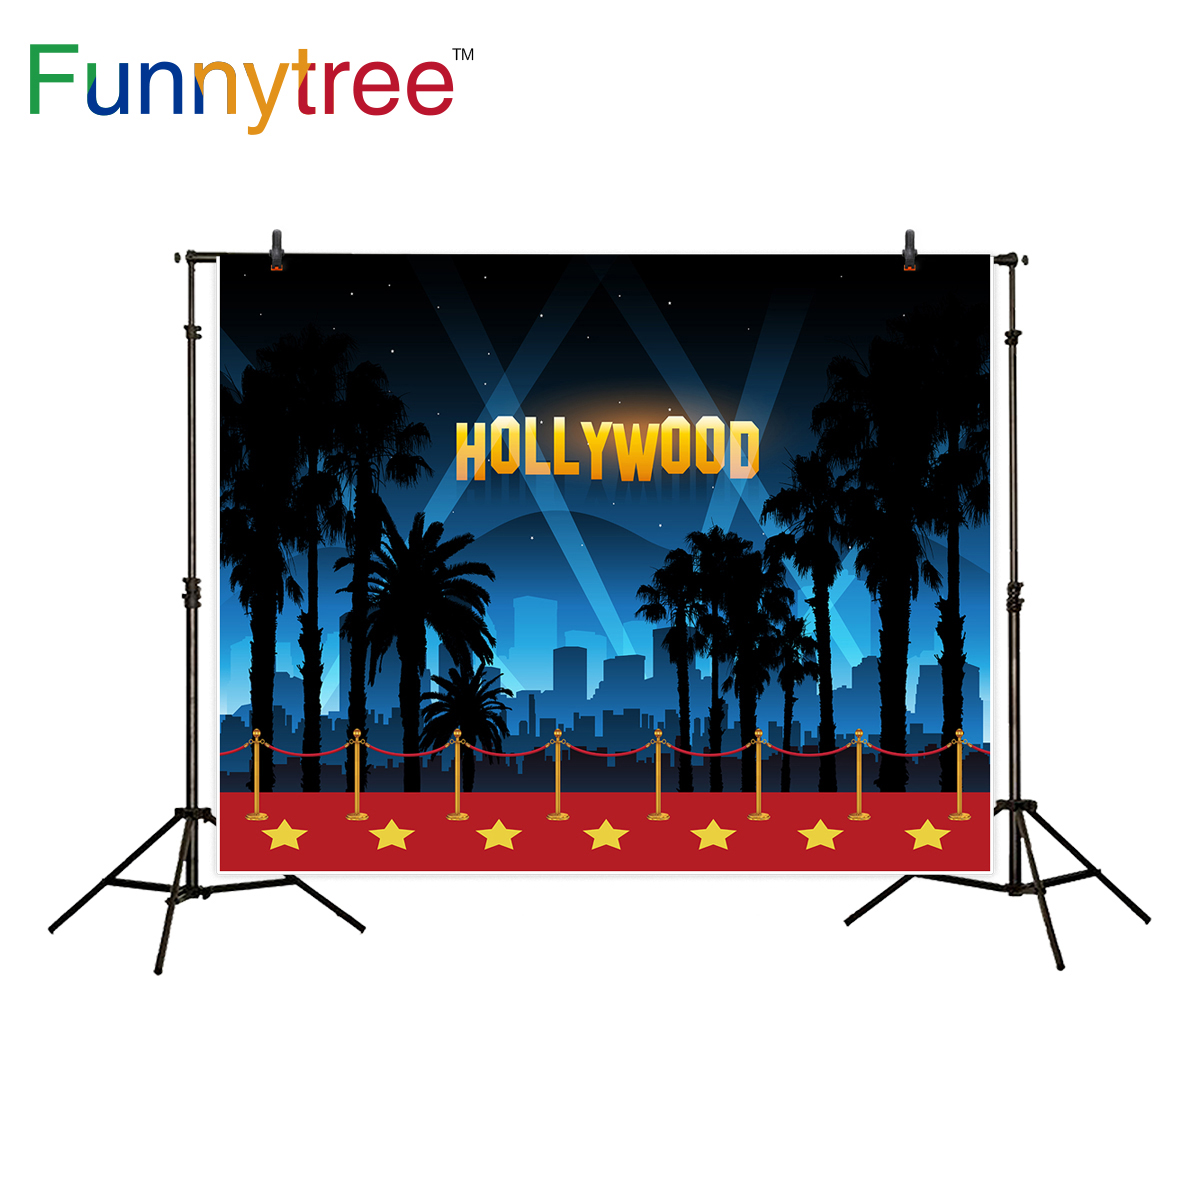 Funnytree background for photography stars red carpet party decor hollywood city night backdrop photo studio photocall new ...